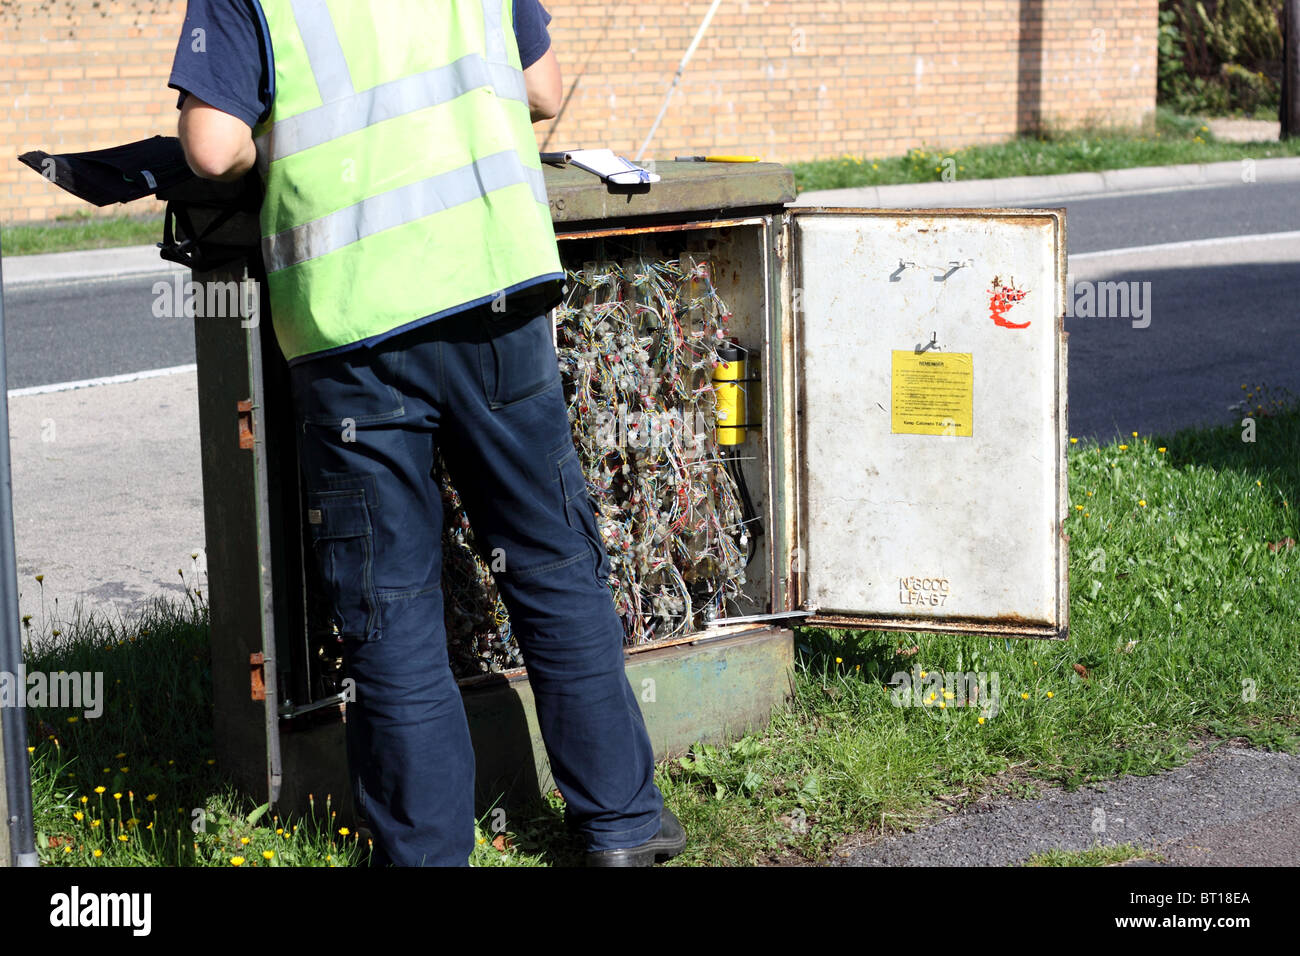 a british telecom telephone engineer examining a junction box or cabinet  full of cables  -